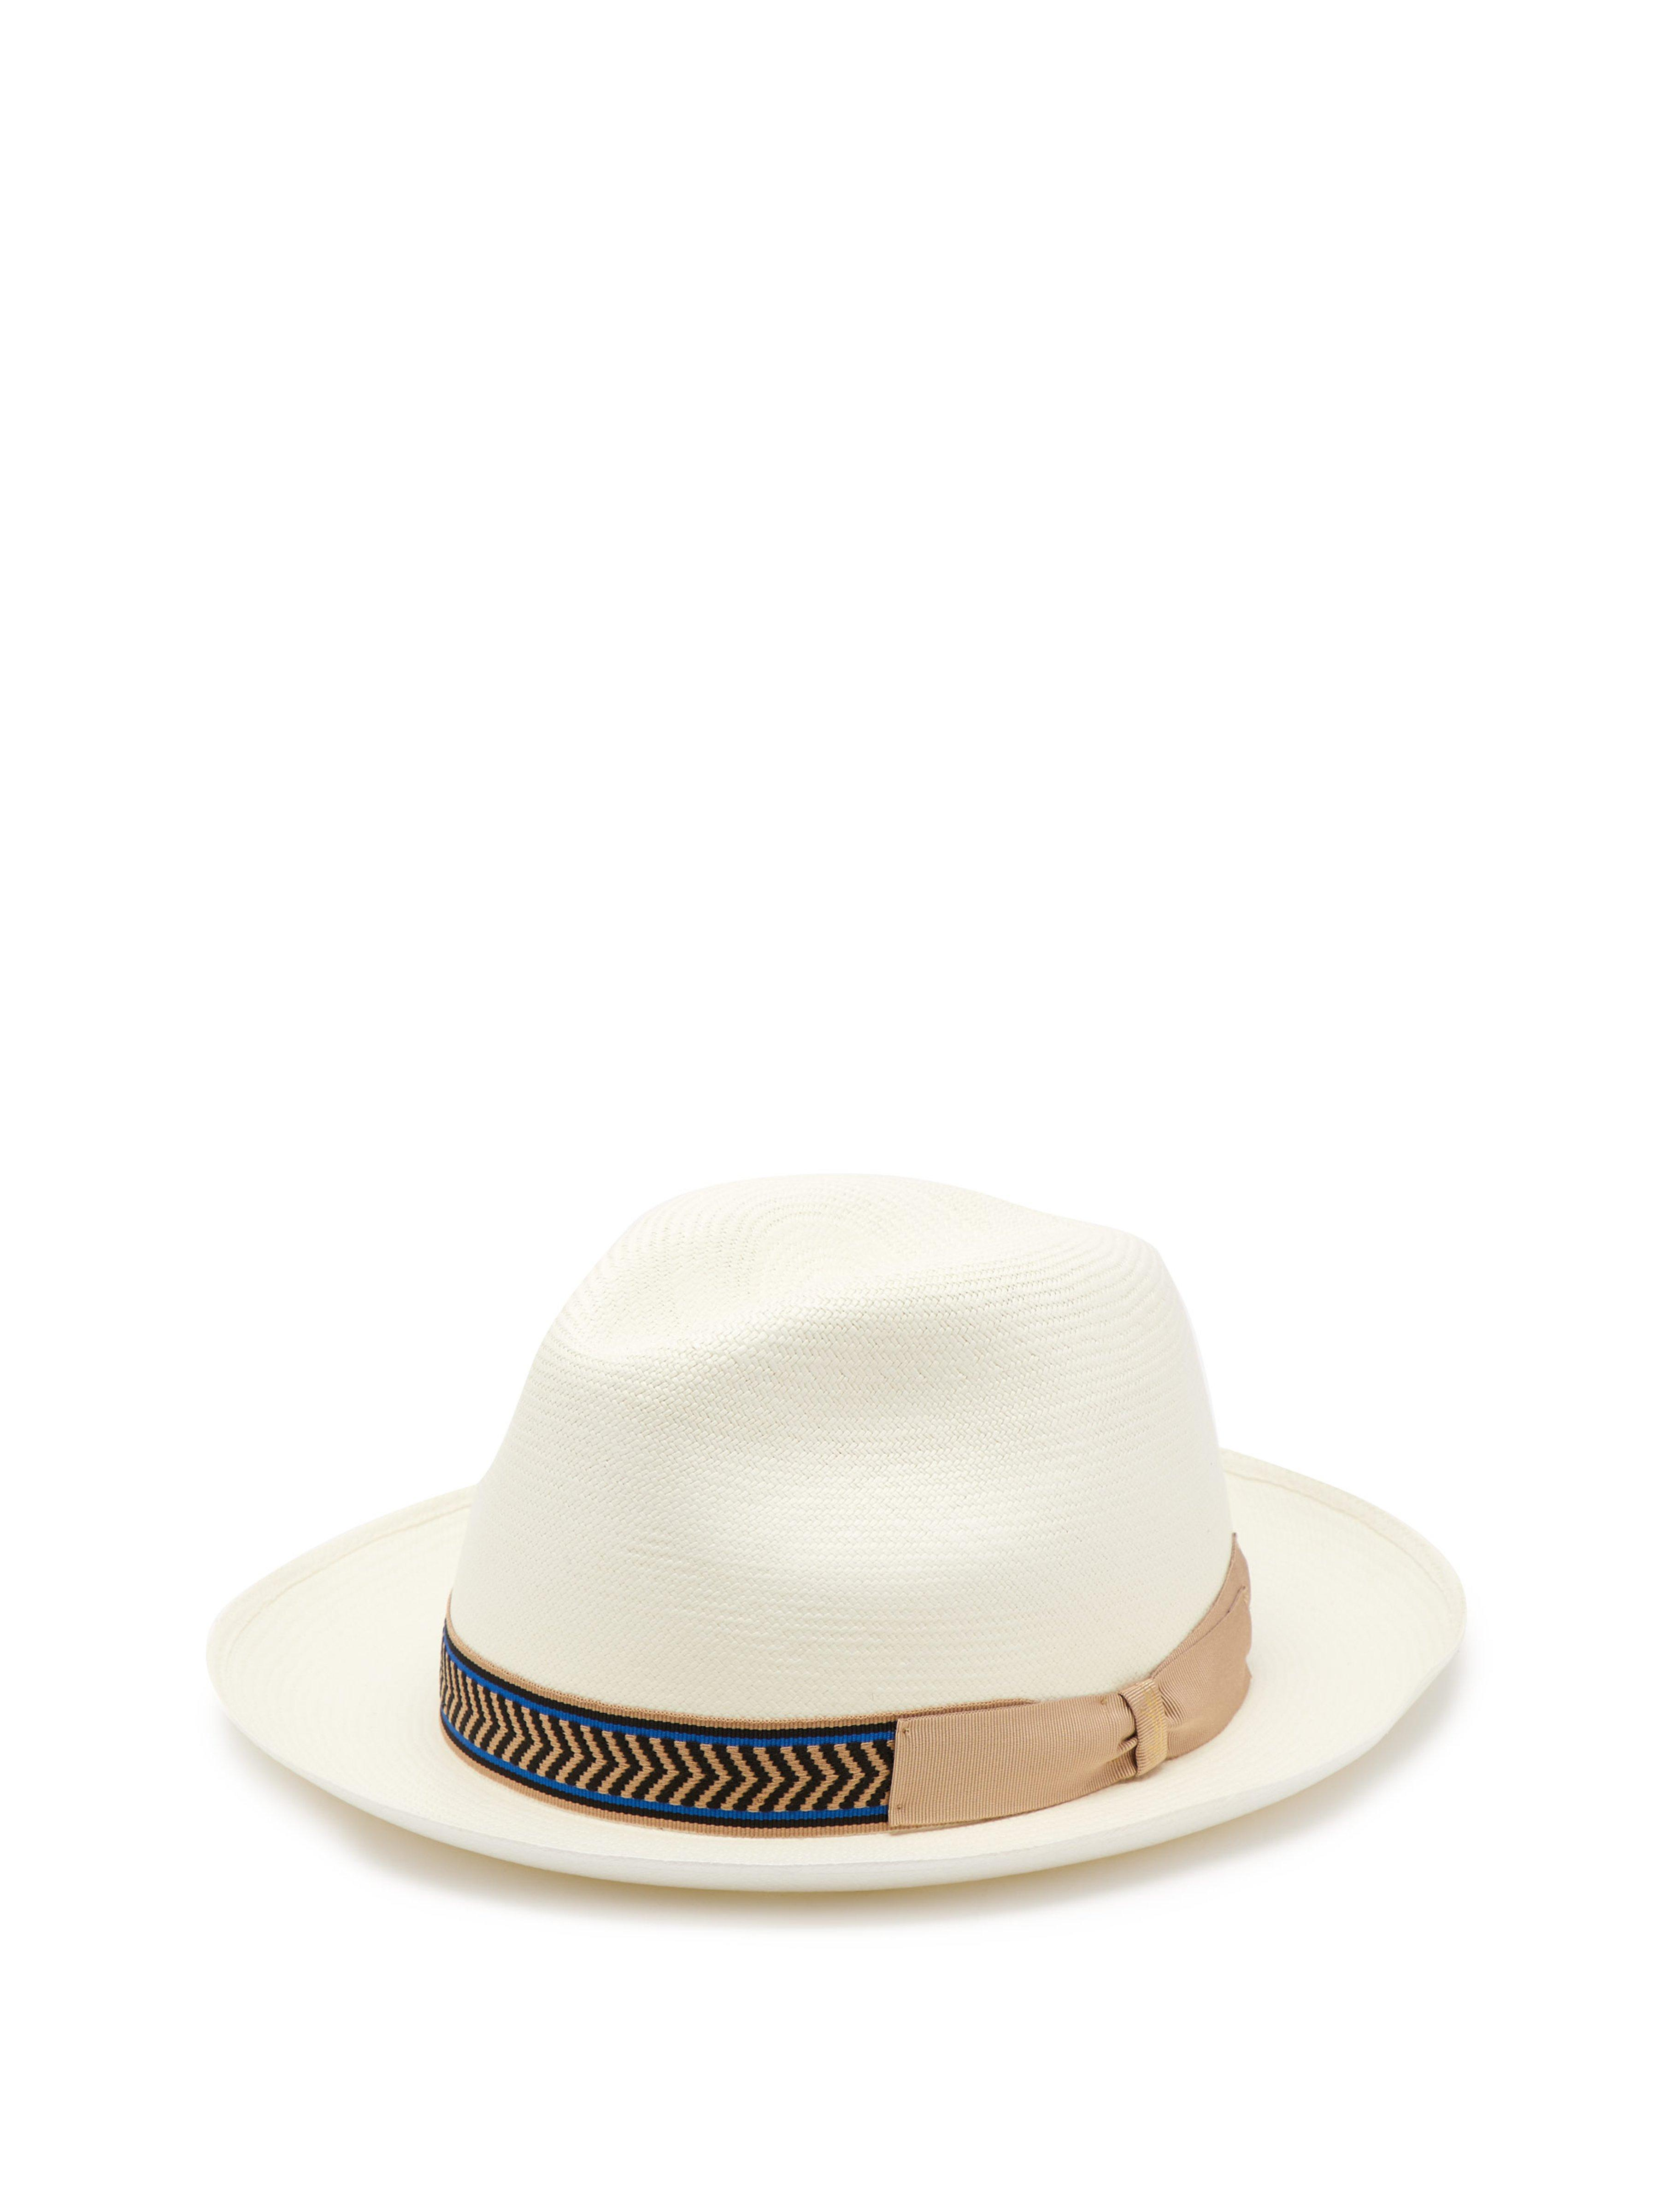 7a0af4372d3c1 Borsalino Grosgrain Trim Straw Panama Hat in White for Men - Lyst